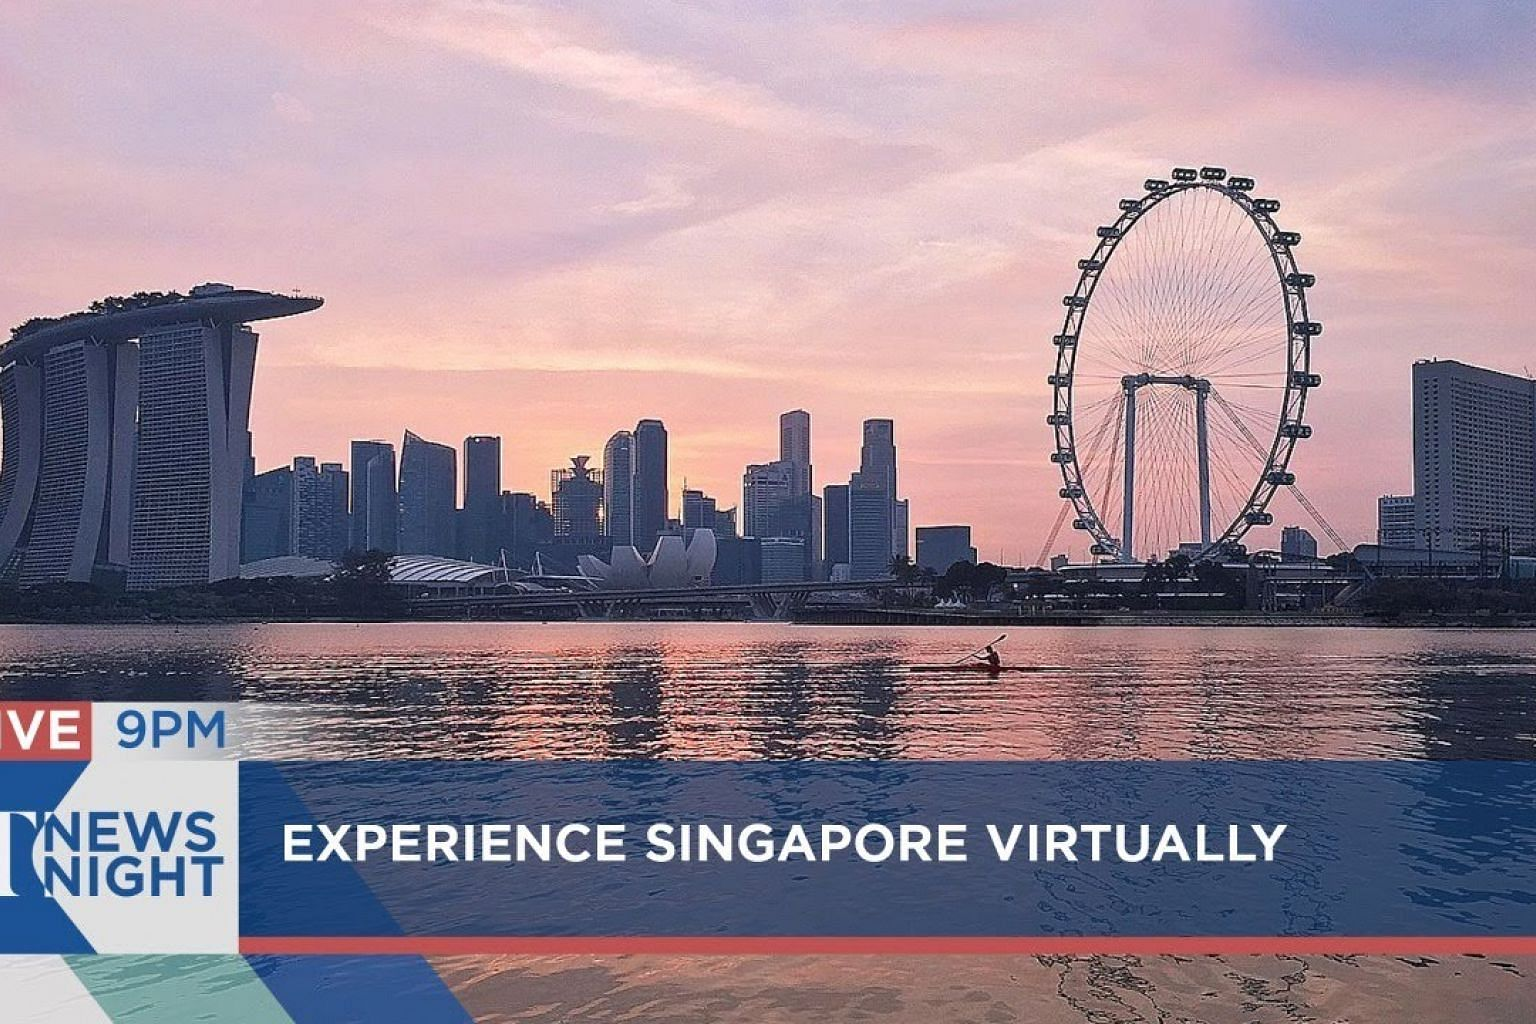 Experience Singapore virtually | S'pore students top global competence test | ST NEWS NIGHT